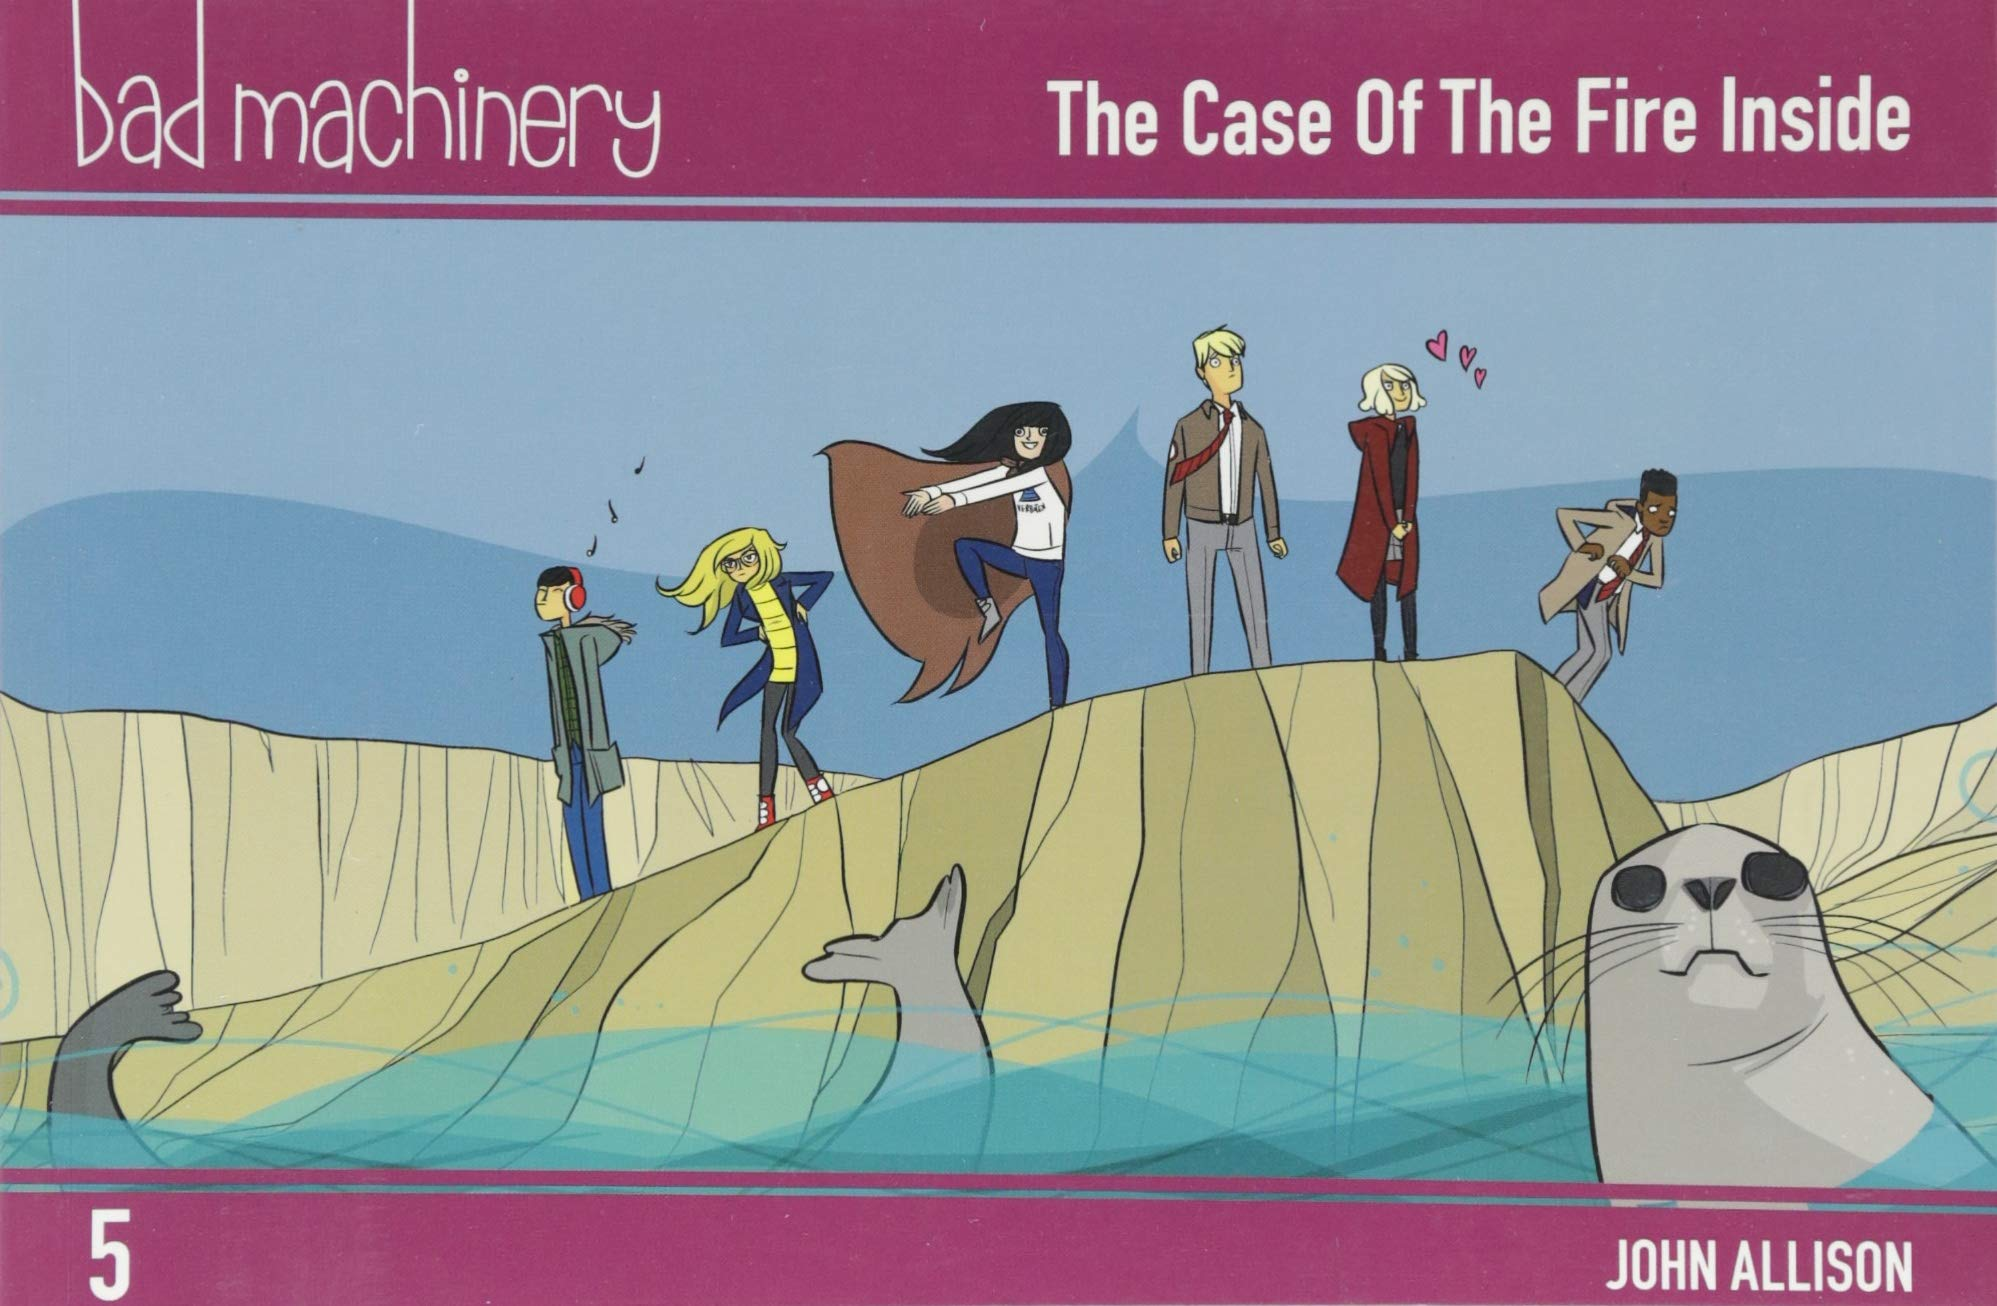 Download Bad Machinery Vol. 5: The Case of the Fire Inside, Pocket Edition pdf